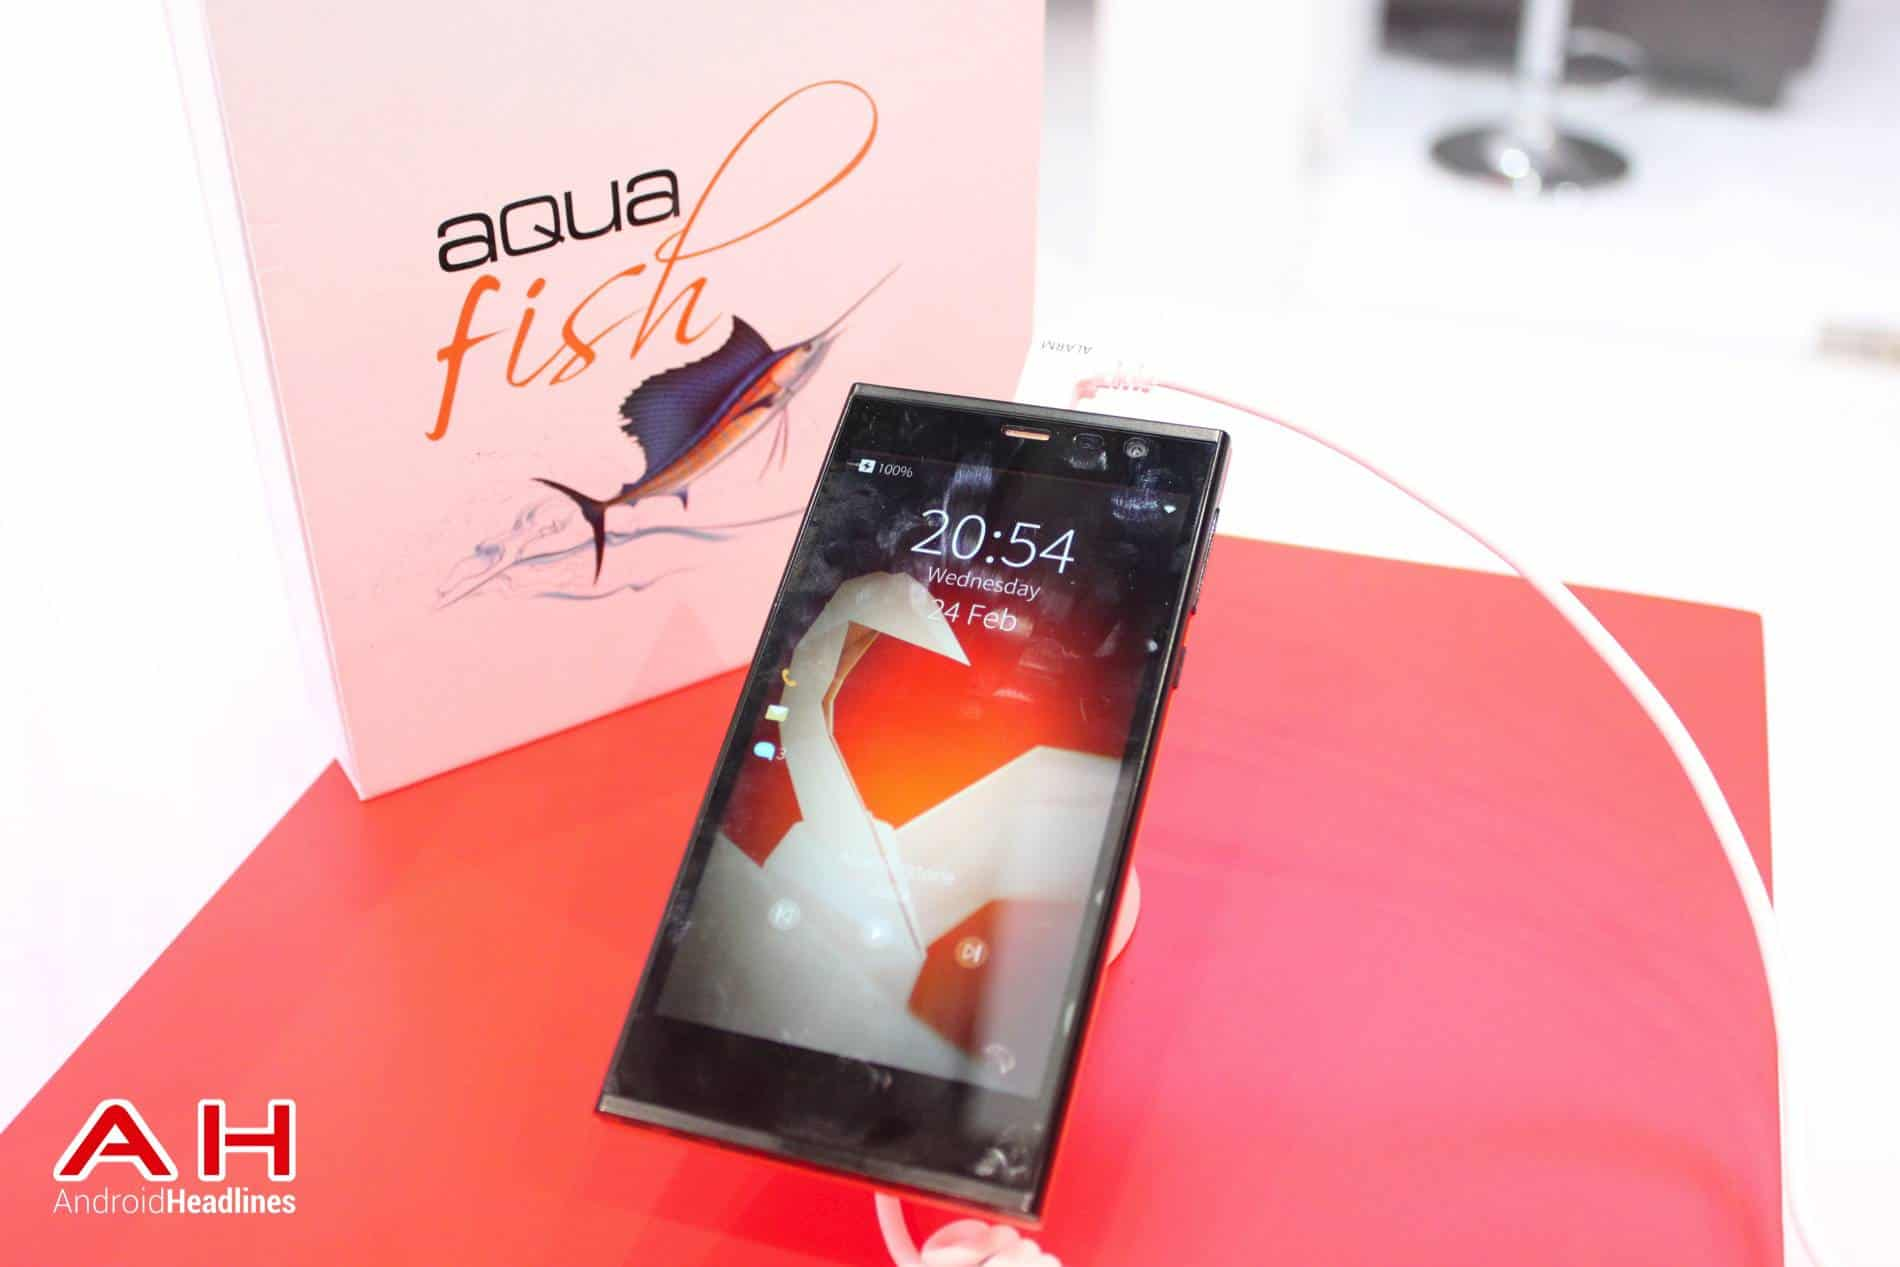 Jolla Intex Aqua Fish MWC AH 01